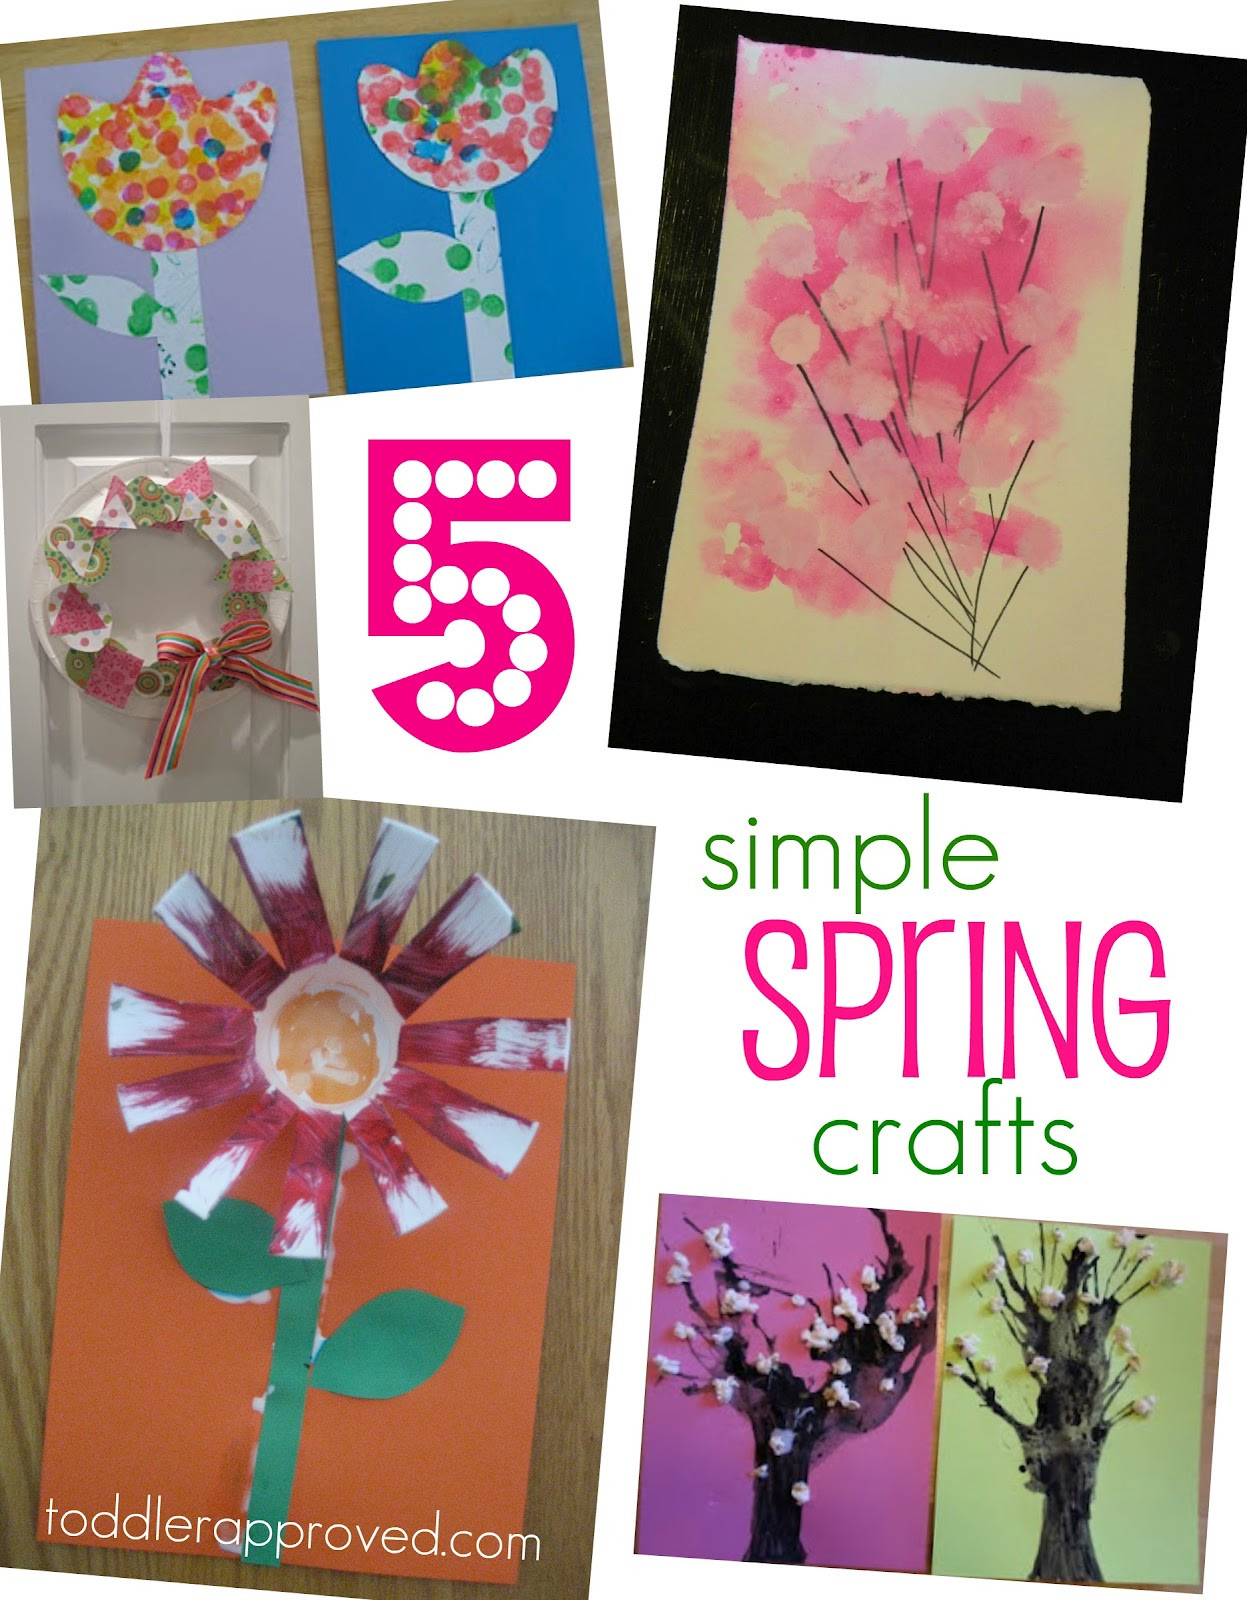 Easy Spring Crafts For Toddlers  Toddler Approved 5 Simple Spring Crafts